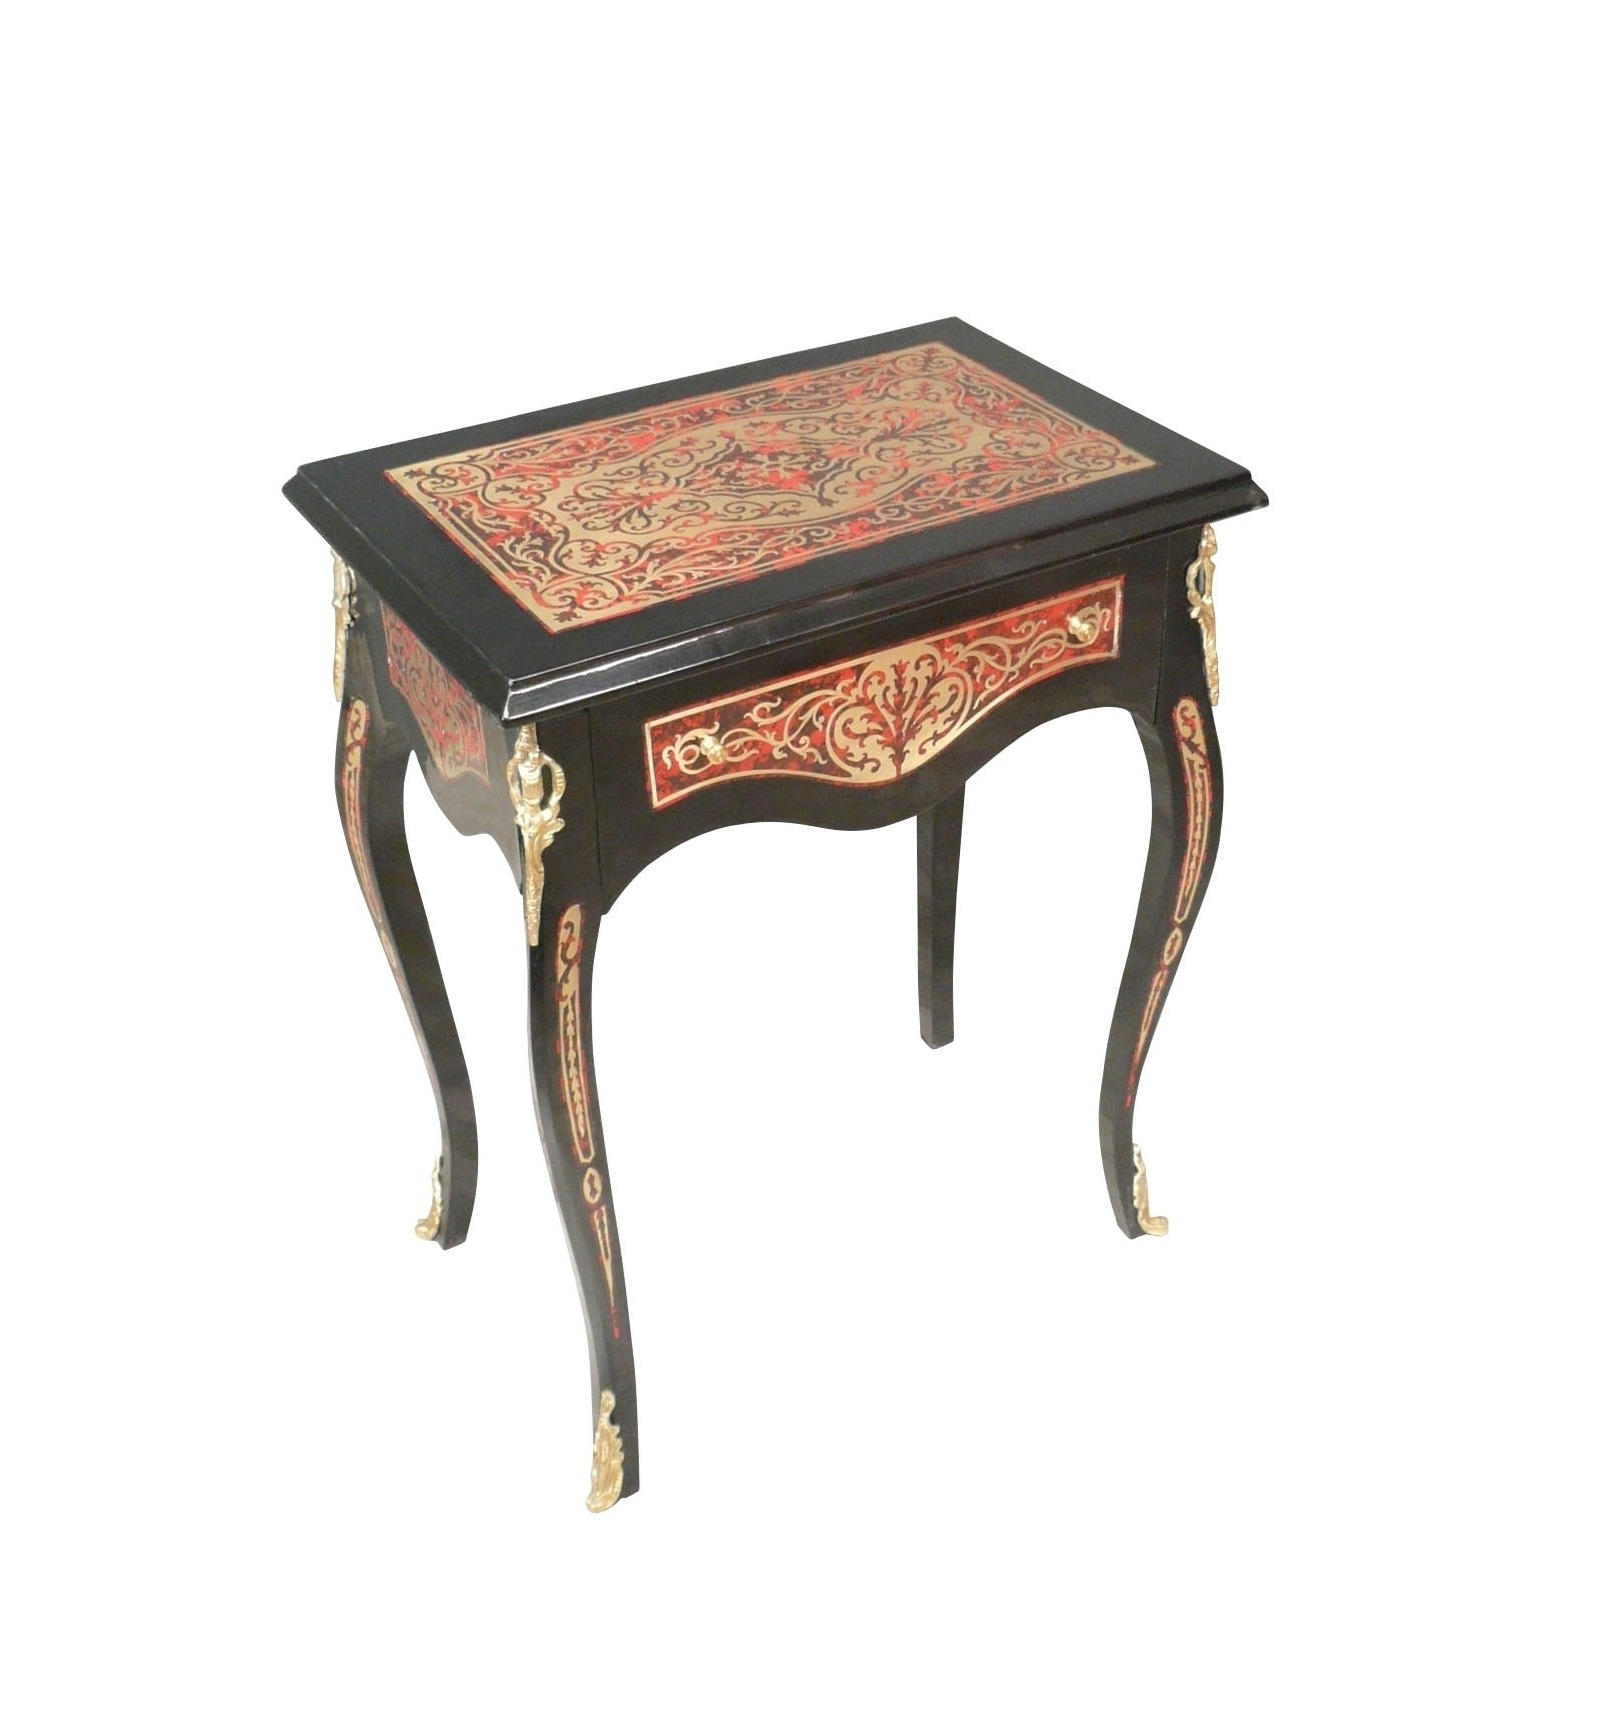 Pedestal table louis xv boulle style furniture - Table louis xv ...